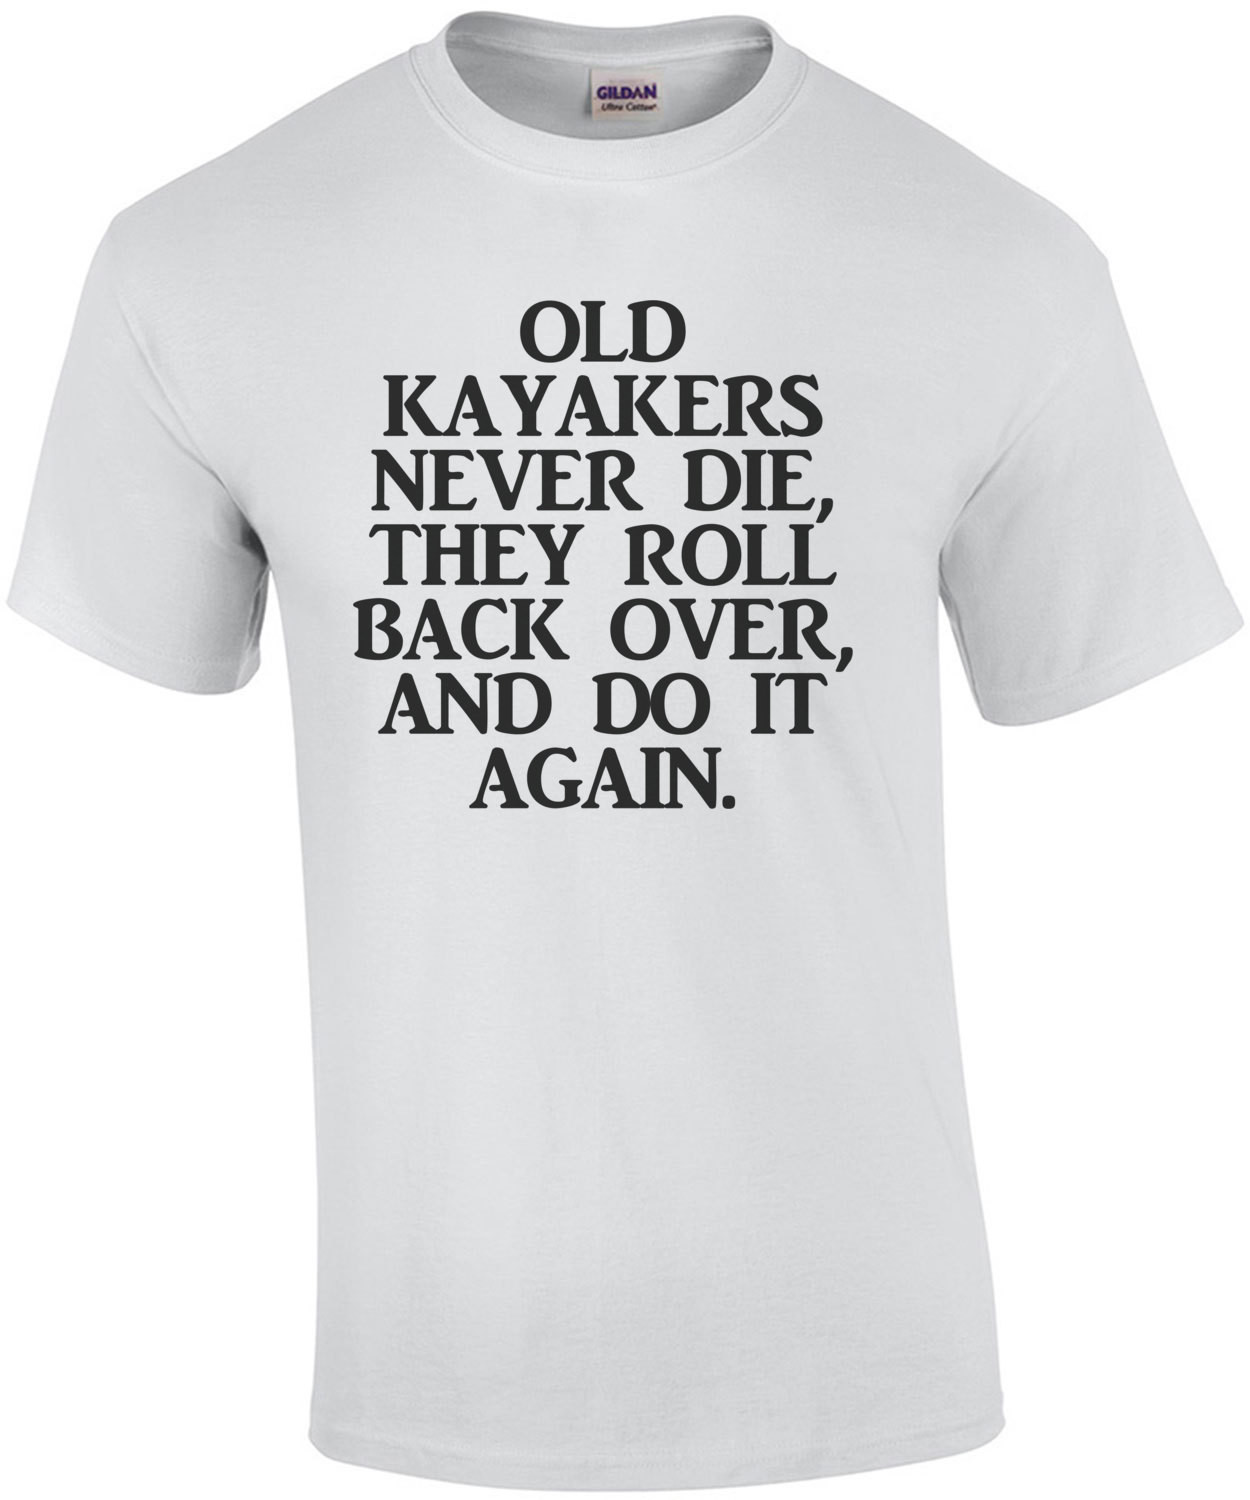 Old Kayakers Never Die They Roll Back Over And Do It Again T-Shirt